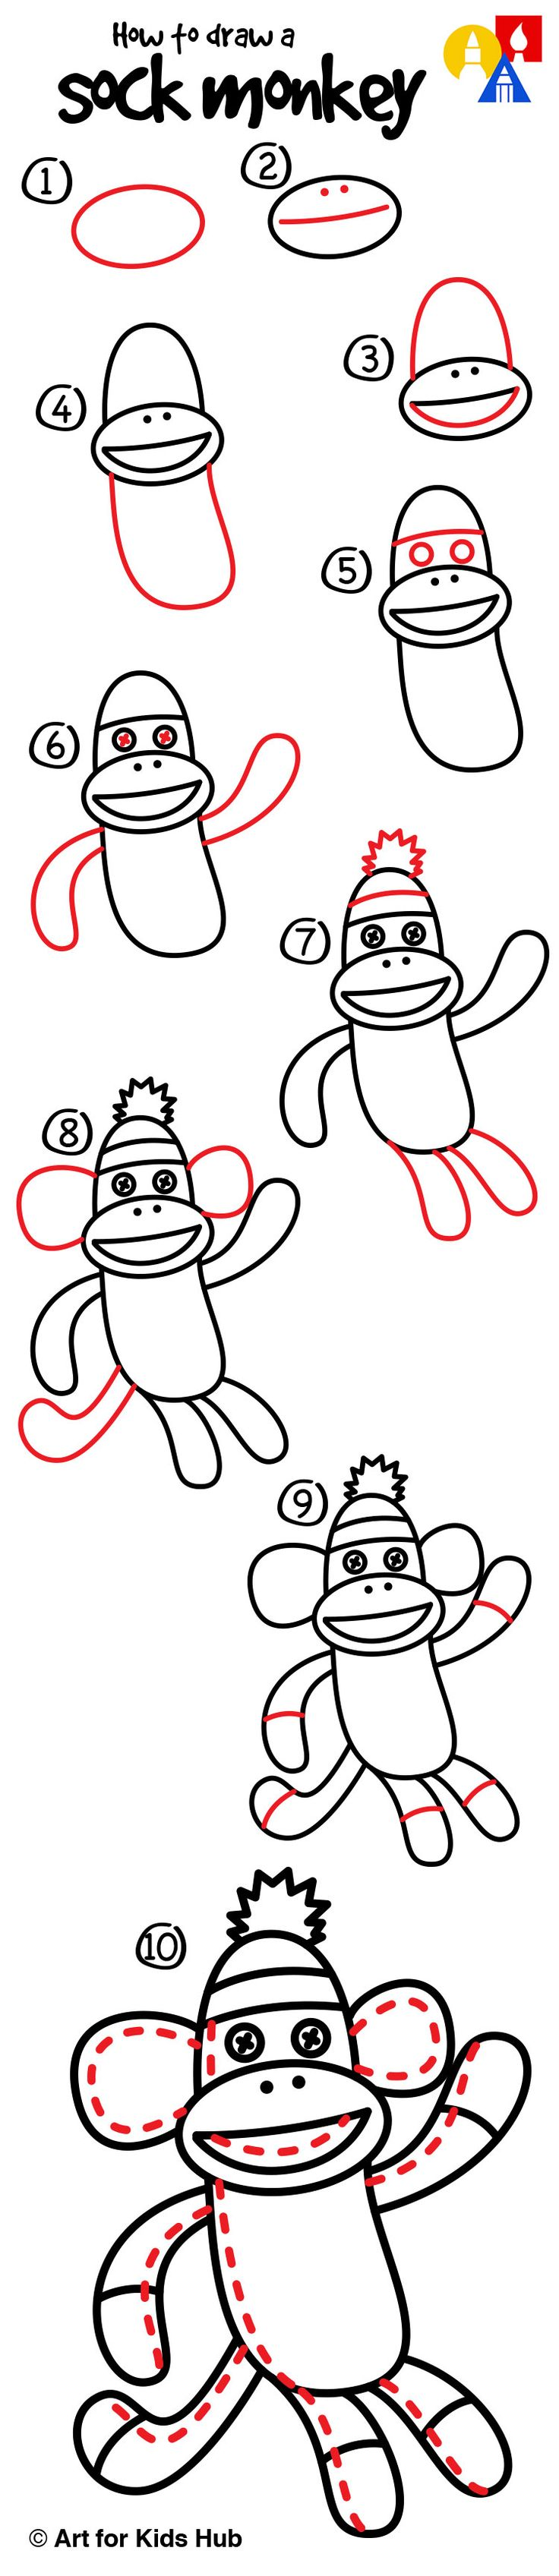 How To Draw A Sock Monkey - Art For Kids Hub -